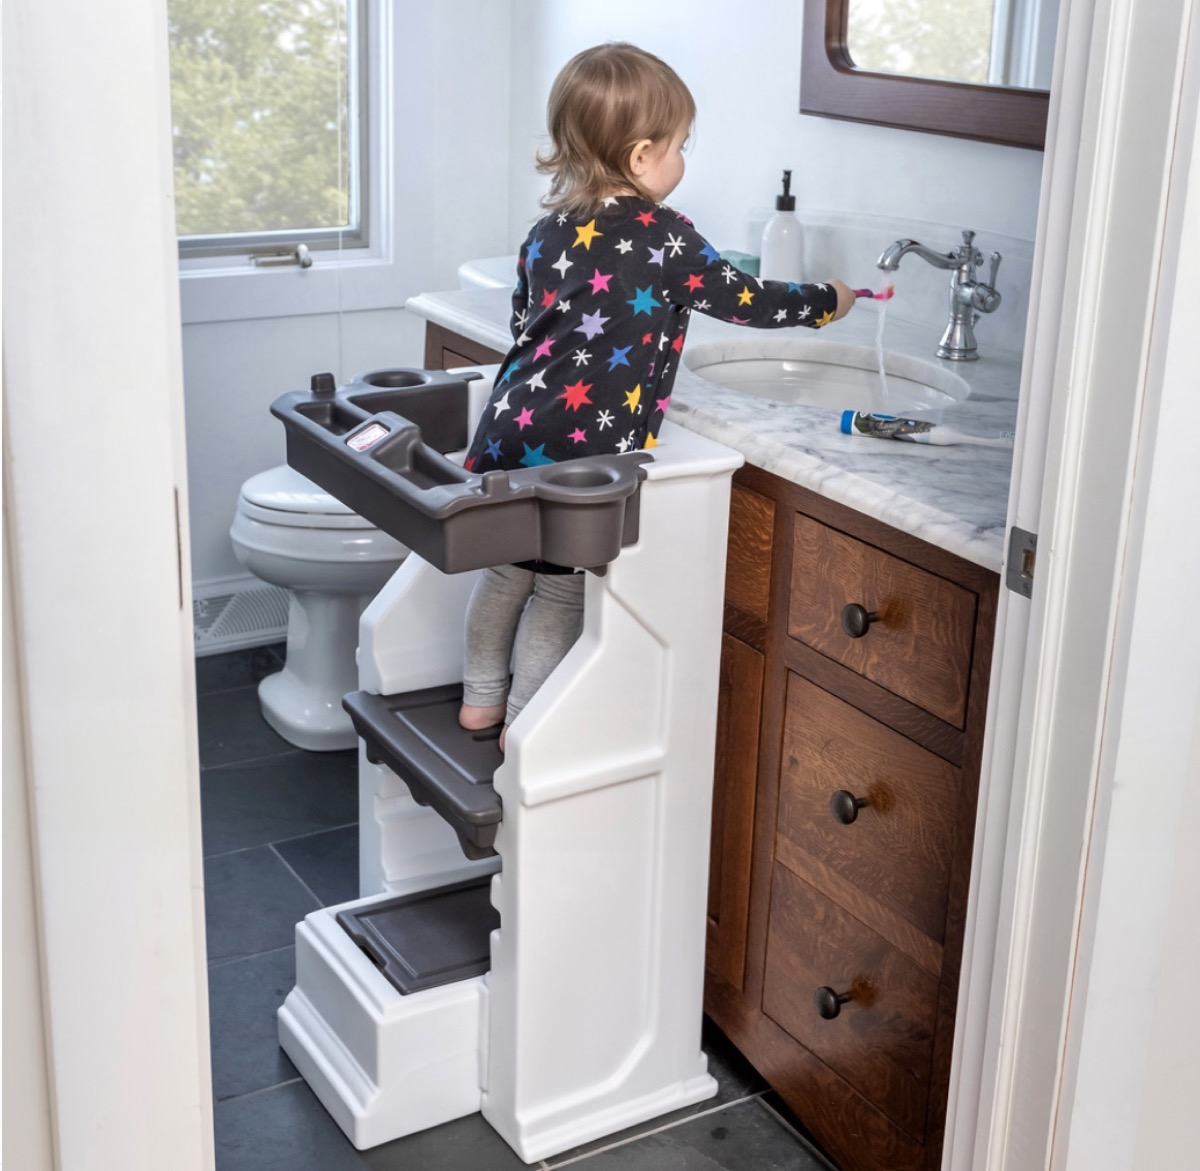 child standing on white and gray learning tower at bathroom sink